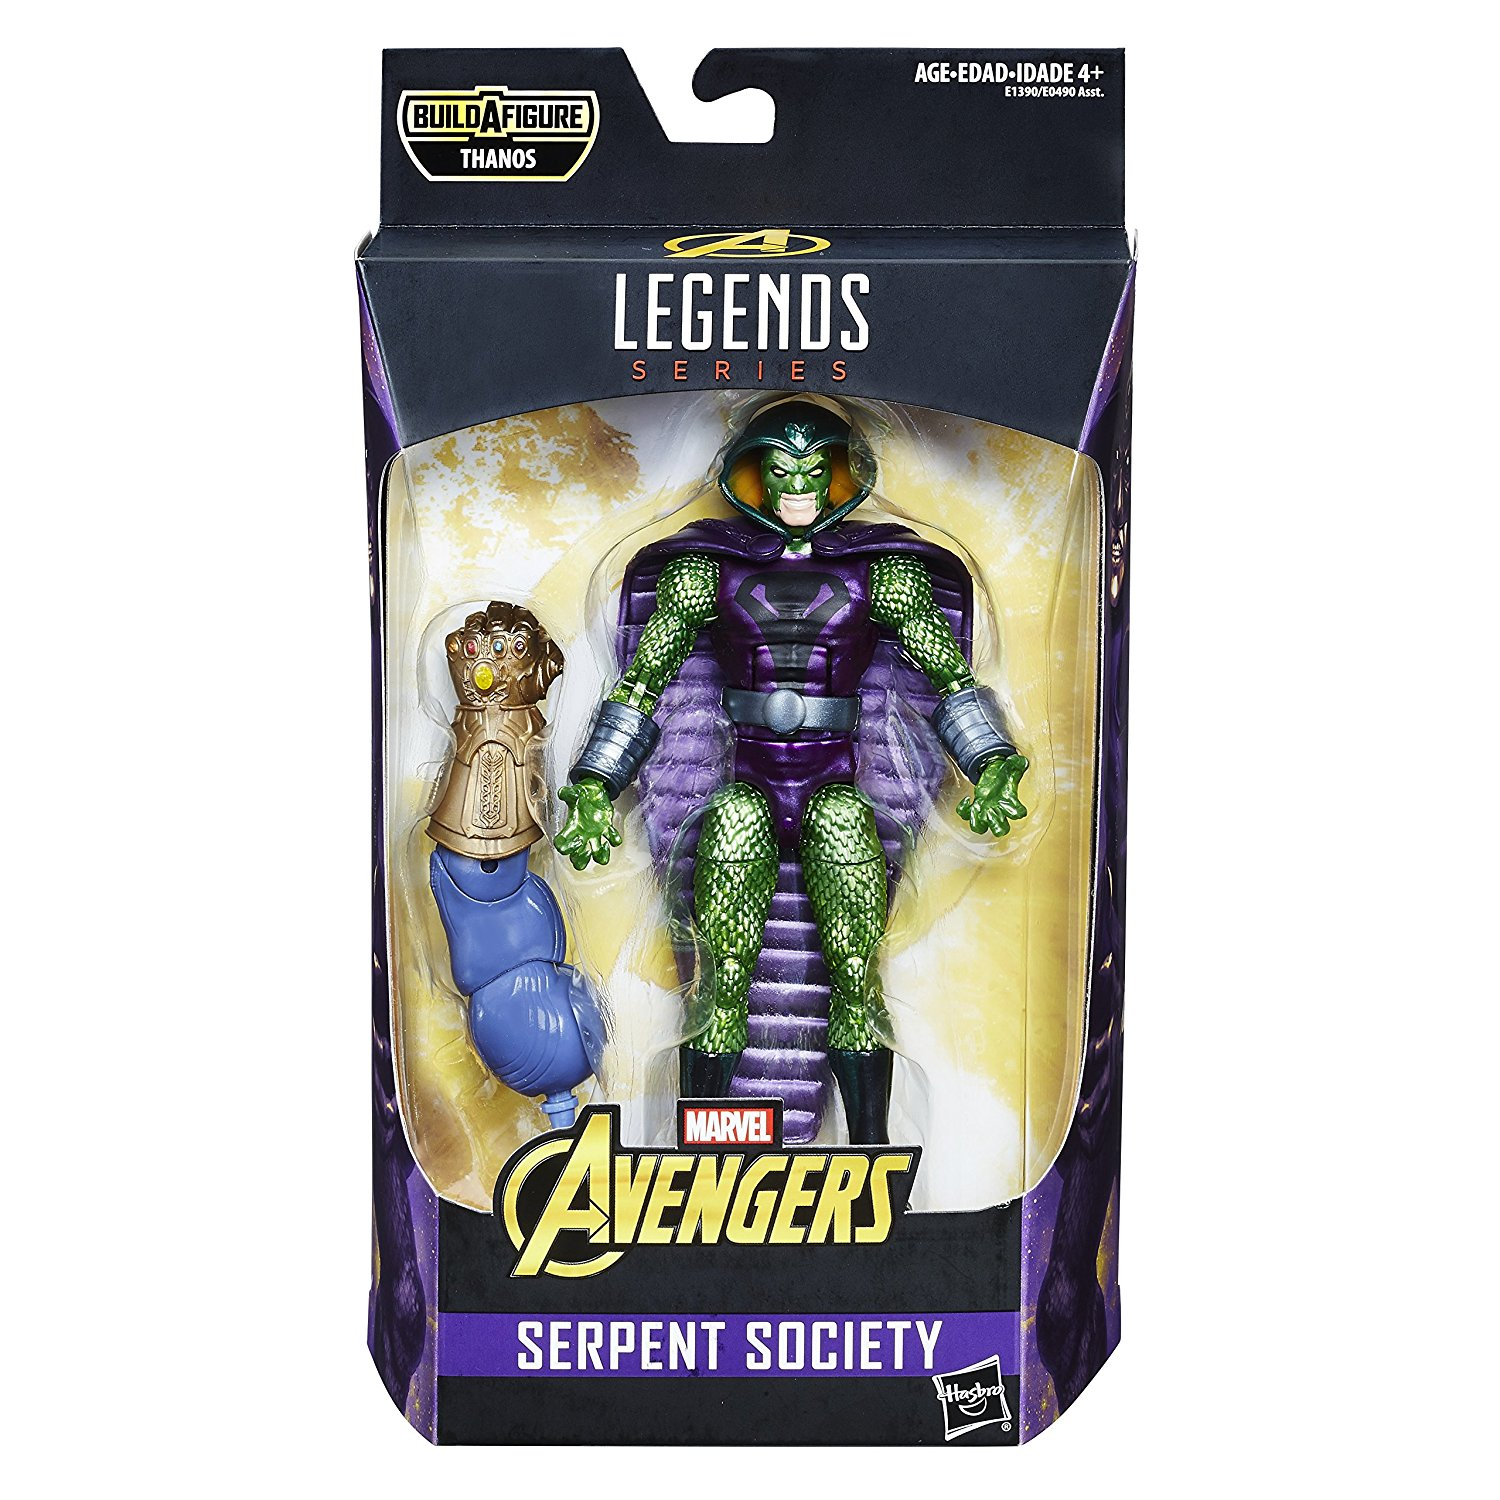 Avengers Marvel Legends Series - Serpent Society (6 inch)